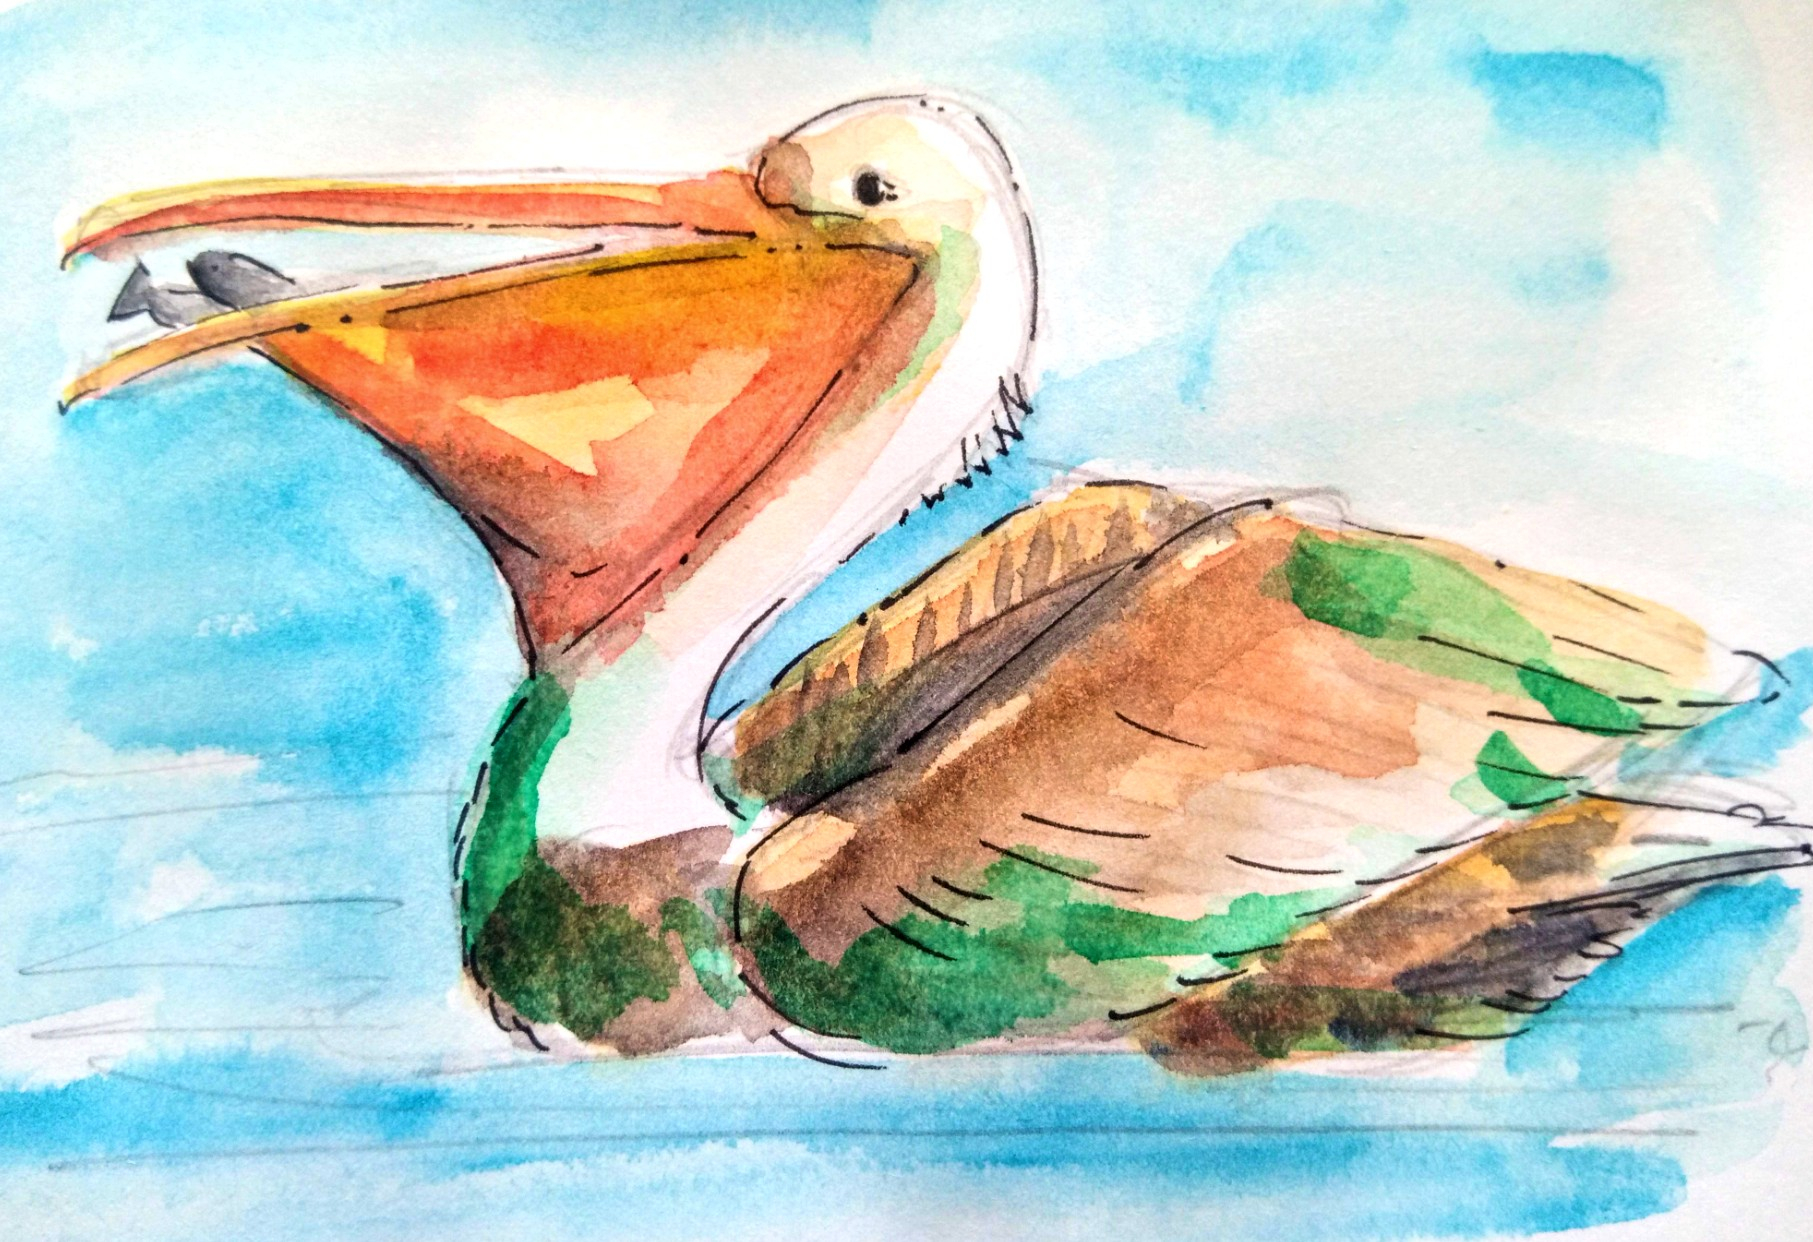 20_06-pelican-fish_Melanie Franz Watercolour